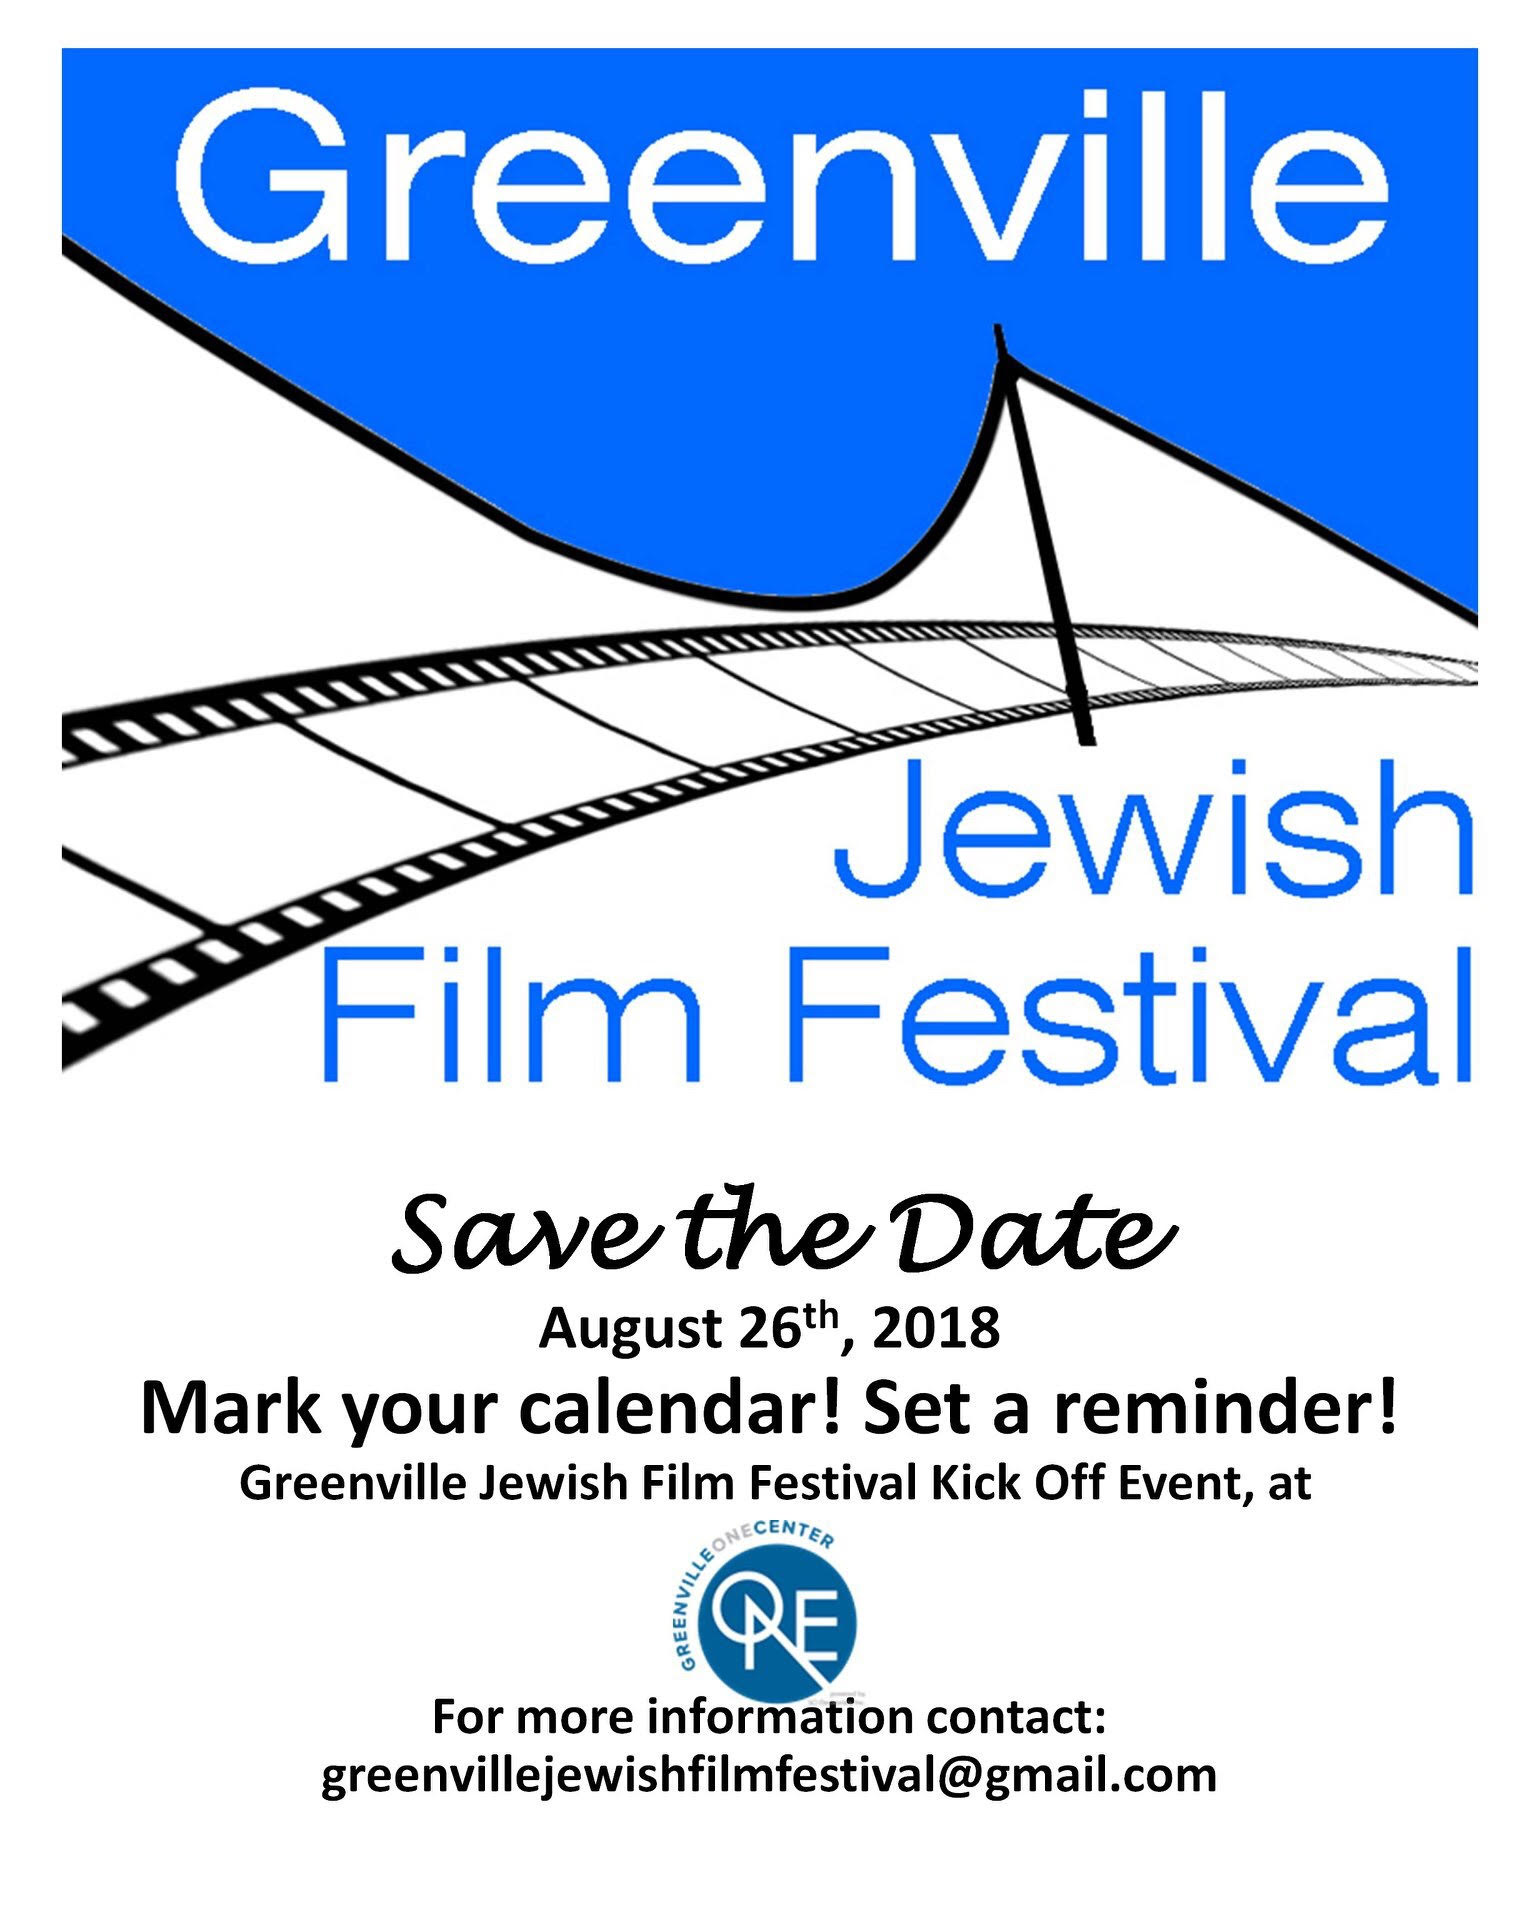 Greenville Jewish Film Festival Kick Off Event @ Greenville One Center | Greenville | South Carolina | United States